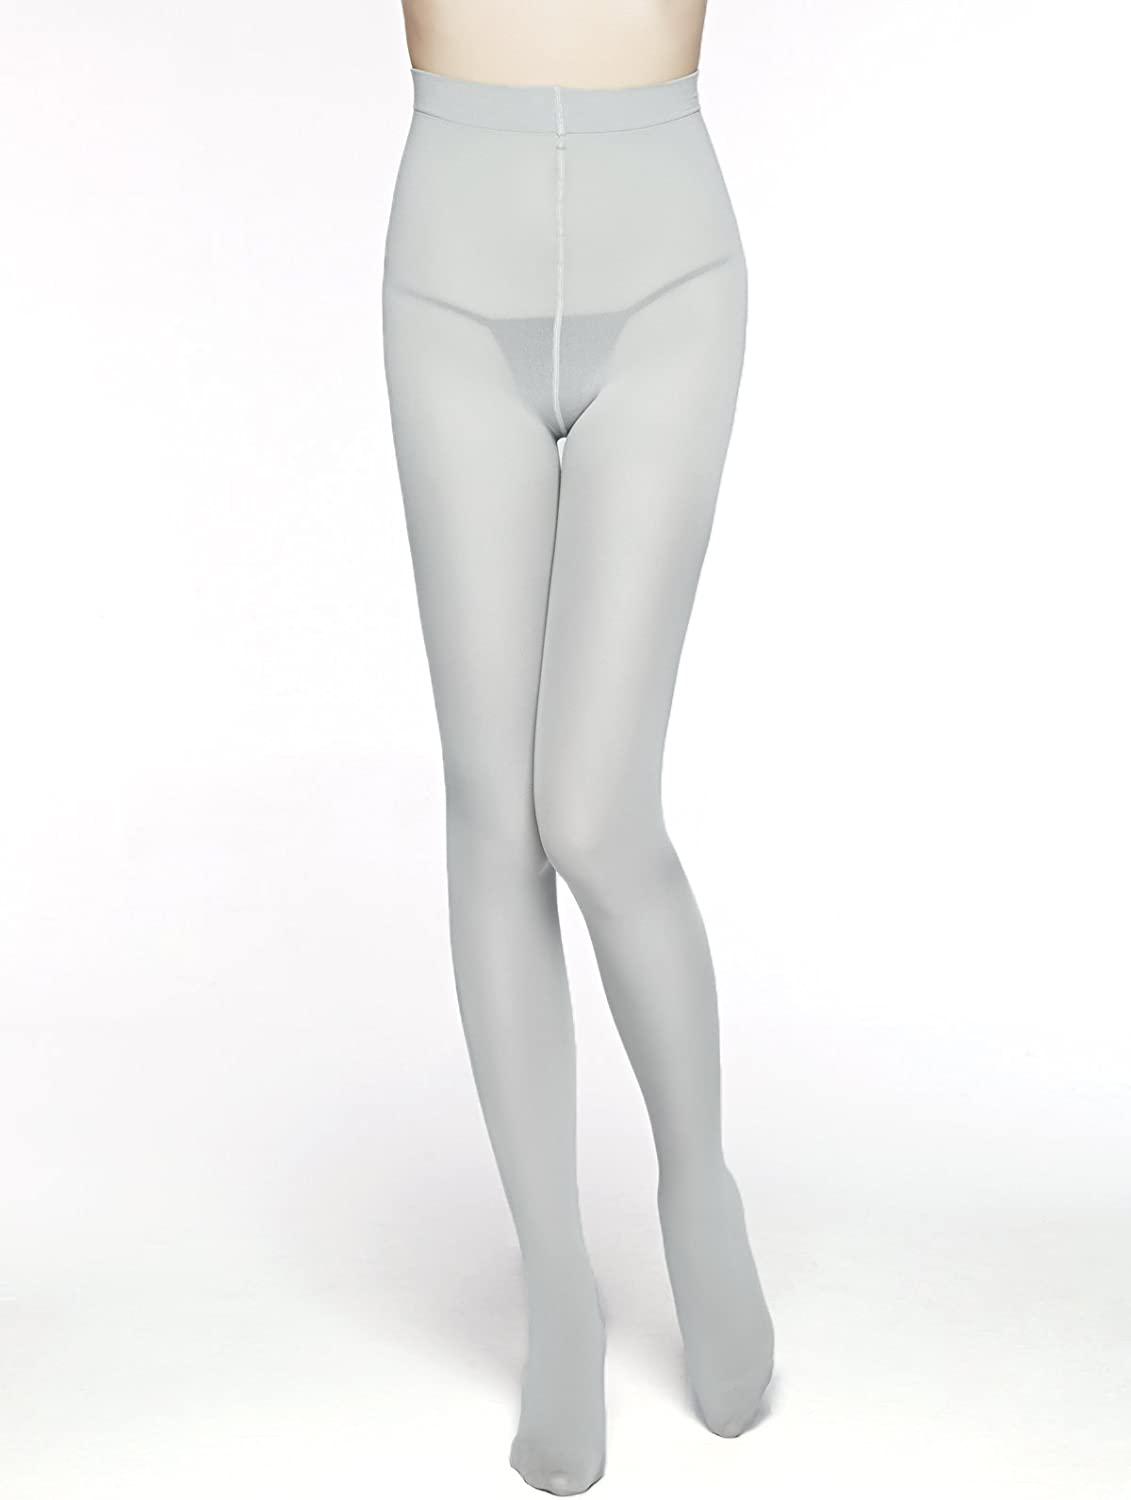 Women's 80 Den Microfiber Soft Opaque Tights (White): Clothing